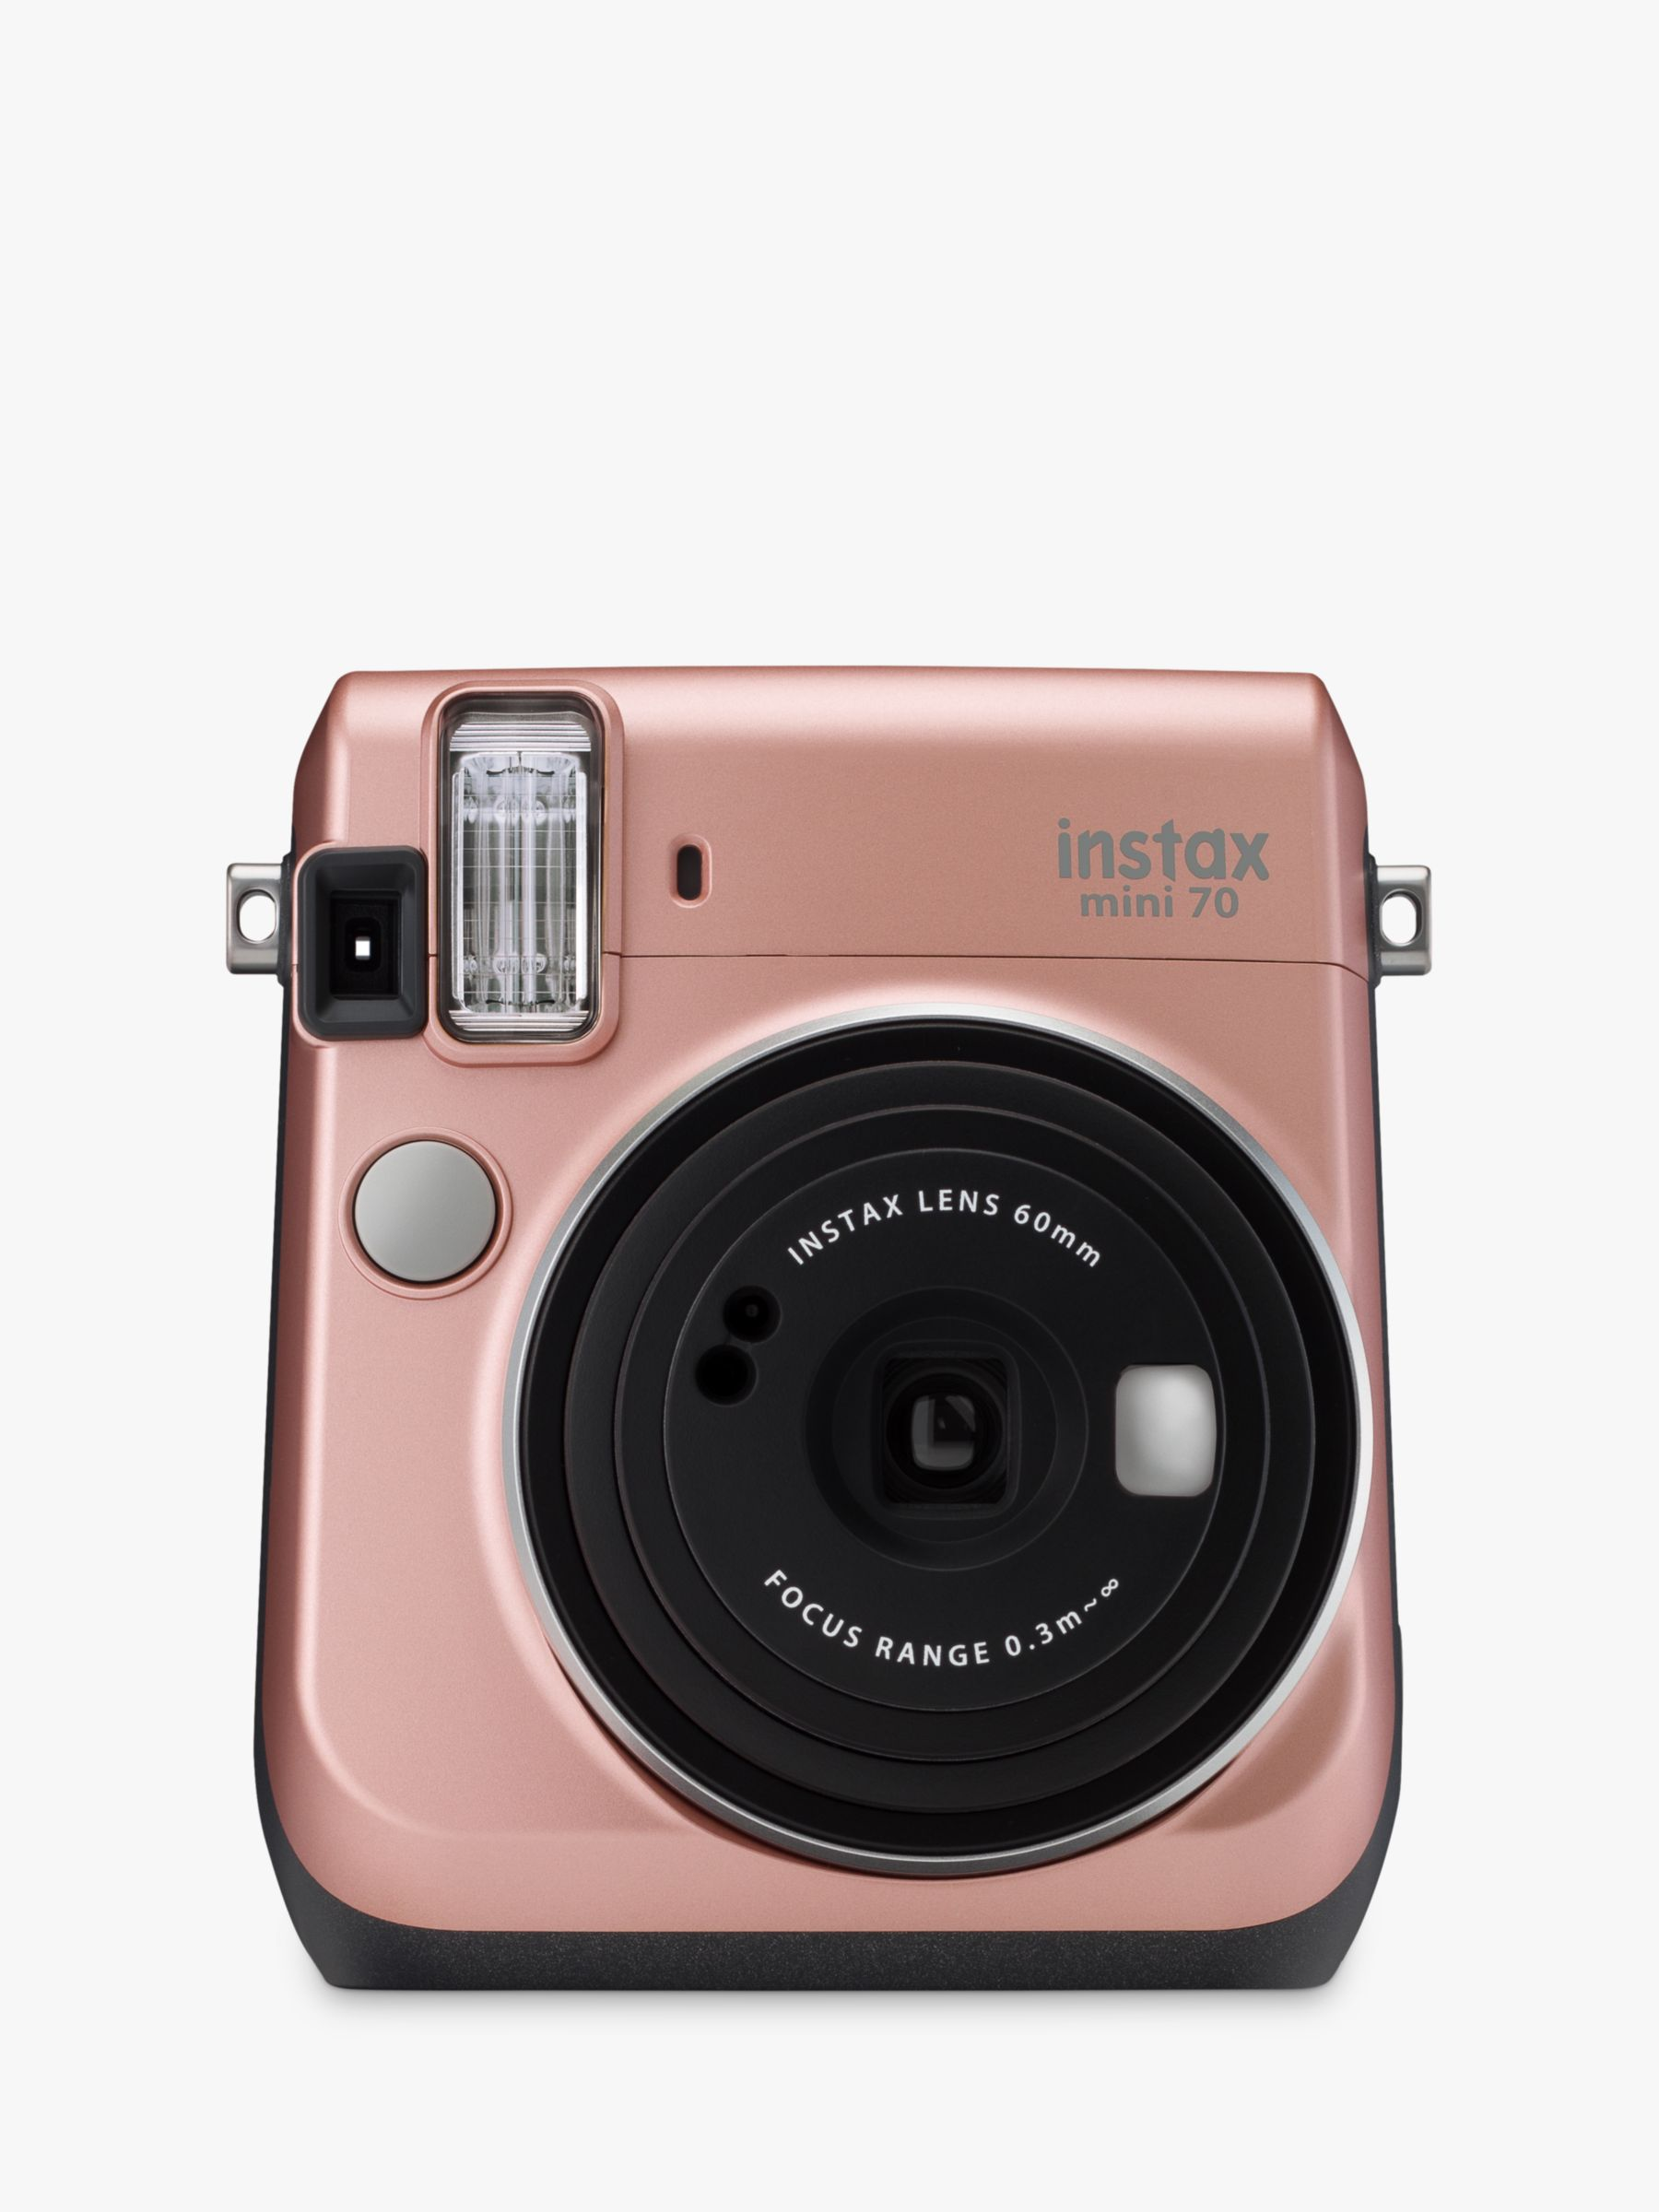 Fujifilm Fujifilm Instax Mini 70 Instant Camera With 10 Shots Of Film, Selfi Mode, Built-In Flash & Hand Strap, Rose Gold